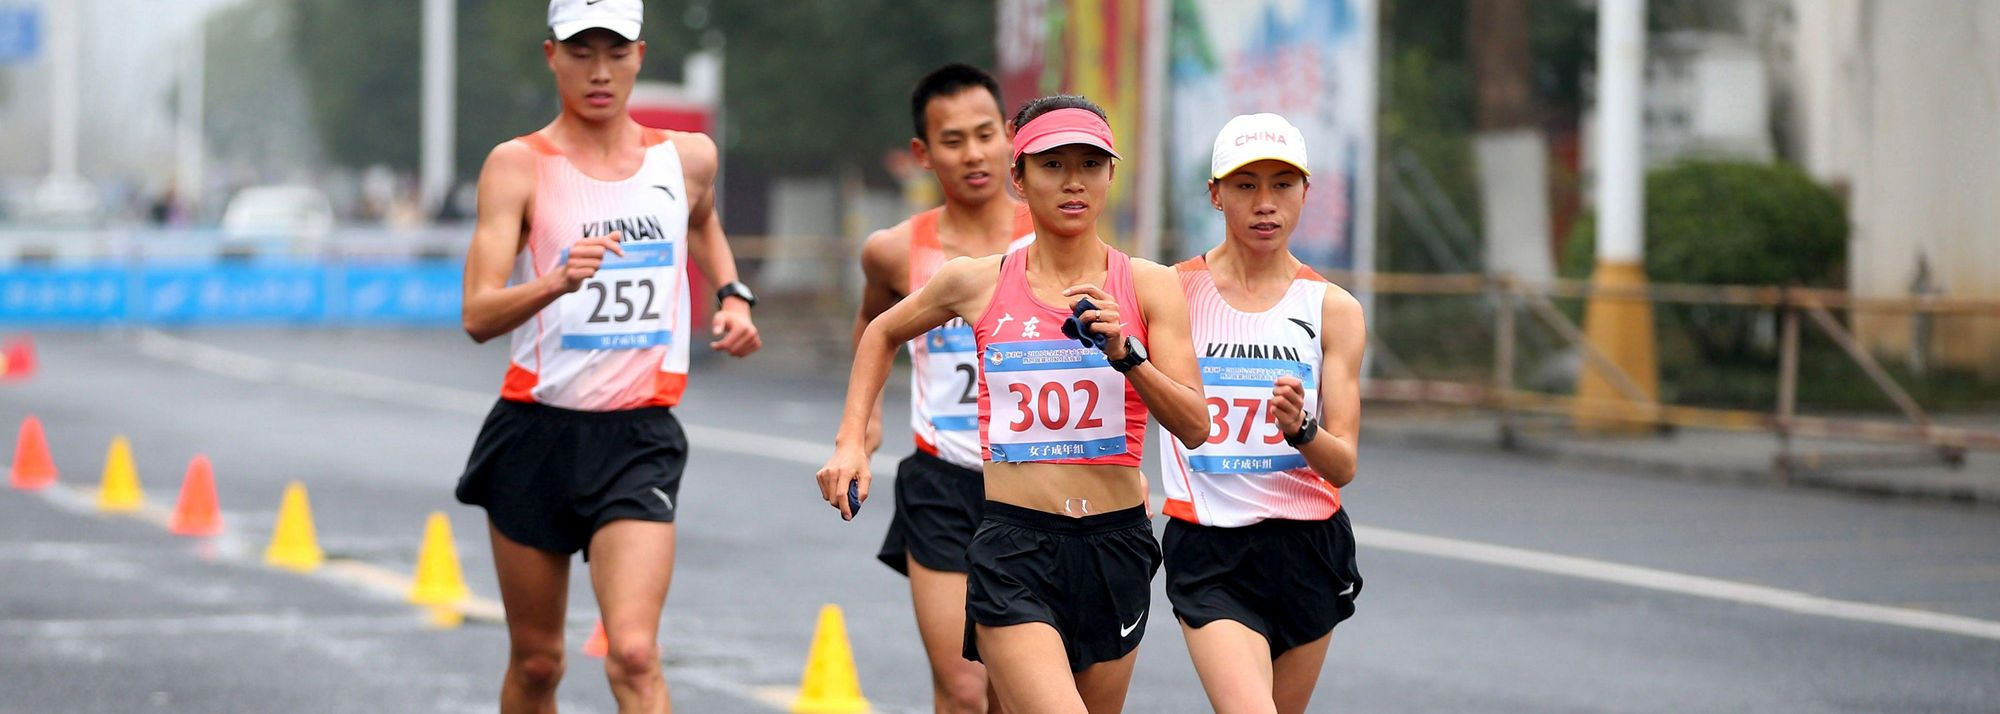 Three-time world 20km race walk champion and 50km world record-holder Liu Hong will lead a strong Chinese contingent aiming to win both the individual and team titles at the Around Taihu International Race Walking competition, the last leg of this year's IAAF Race Walking Challenge that will start on Sunday (20).